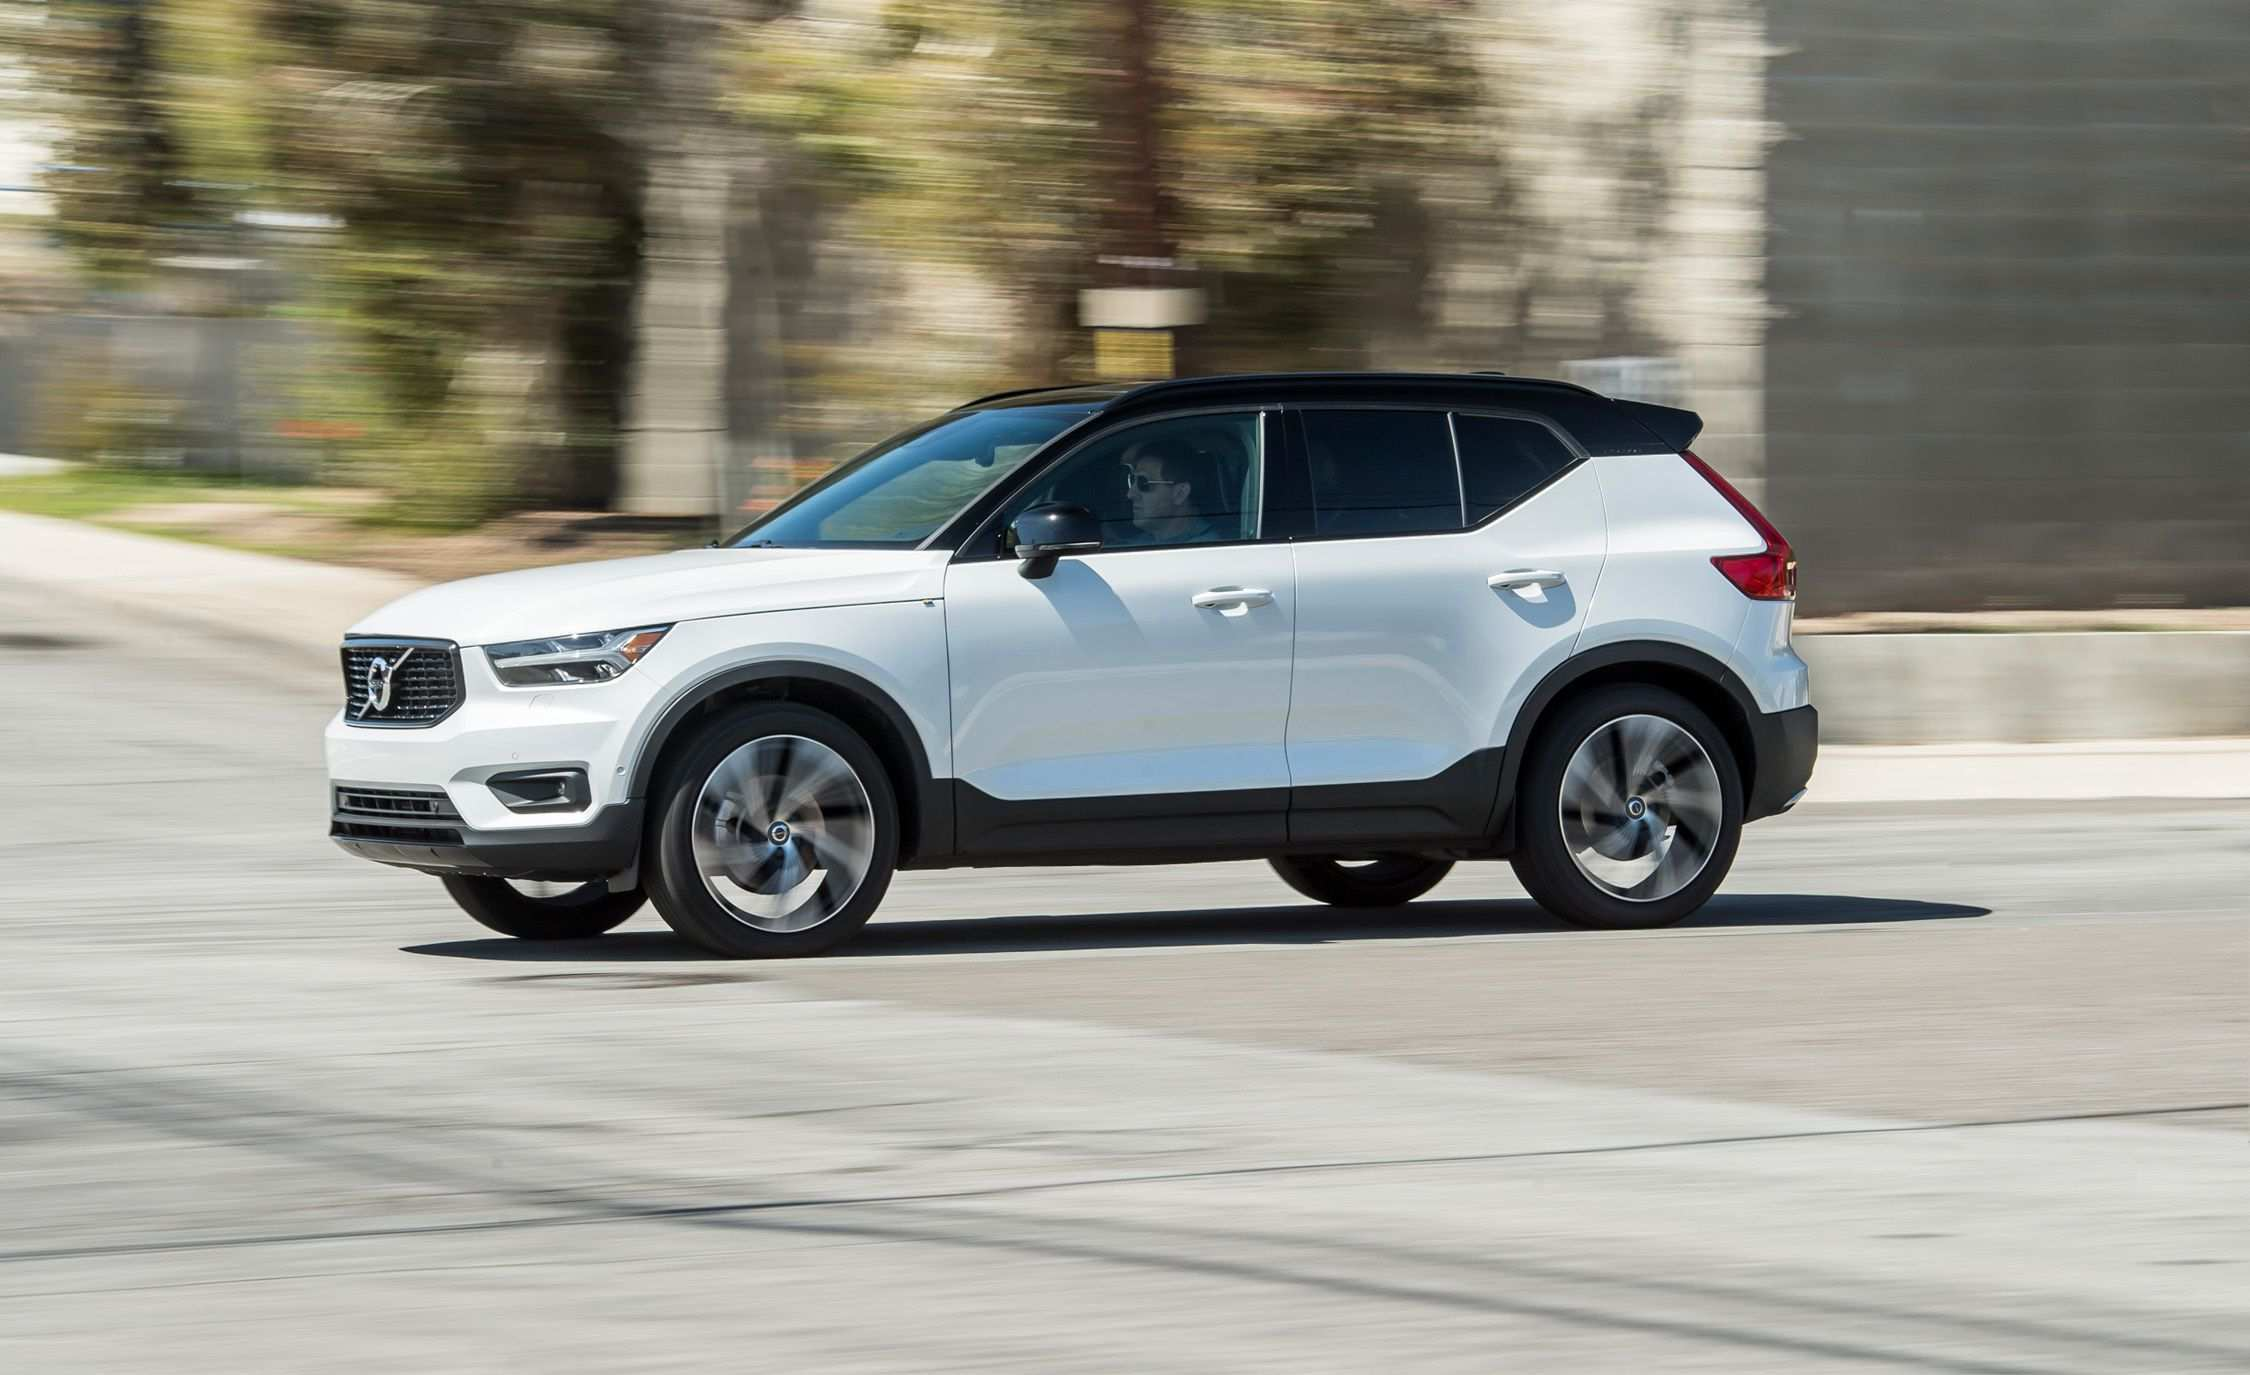 40 Concept of 2019 Volvo Xc40 Length Spesification with 2019 Volvo Xc40 Length